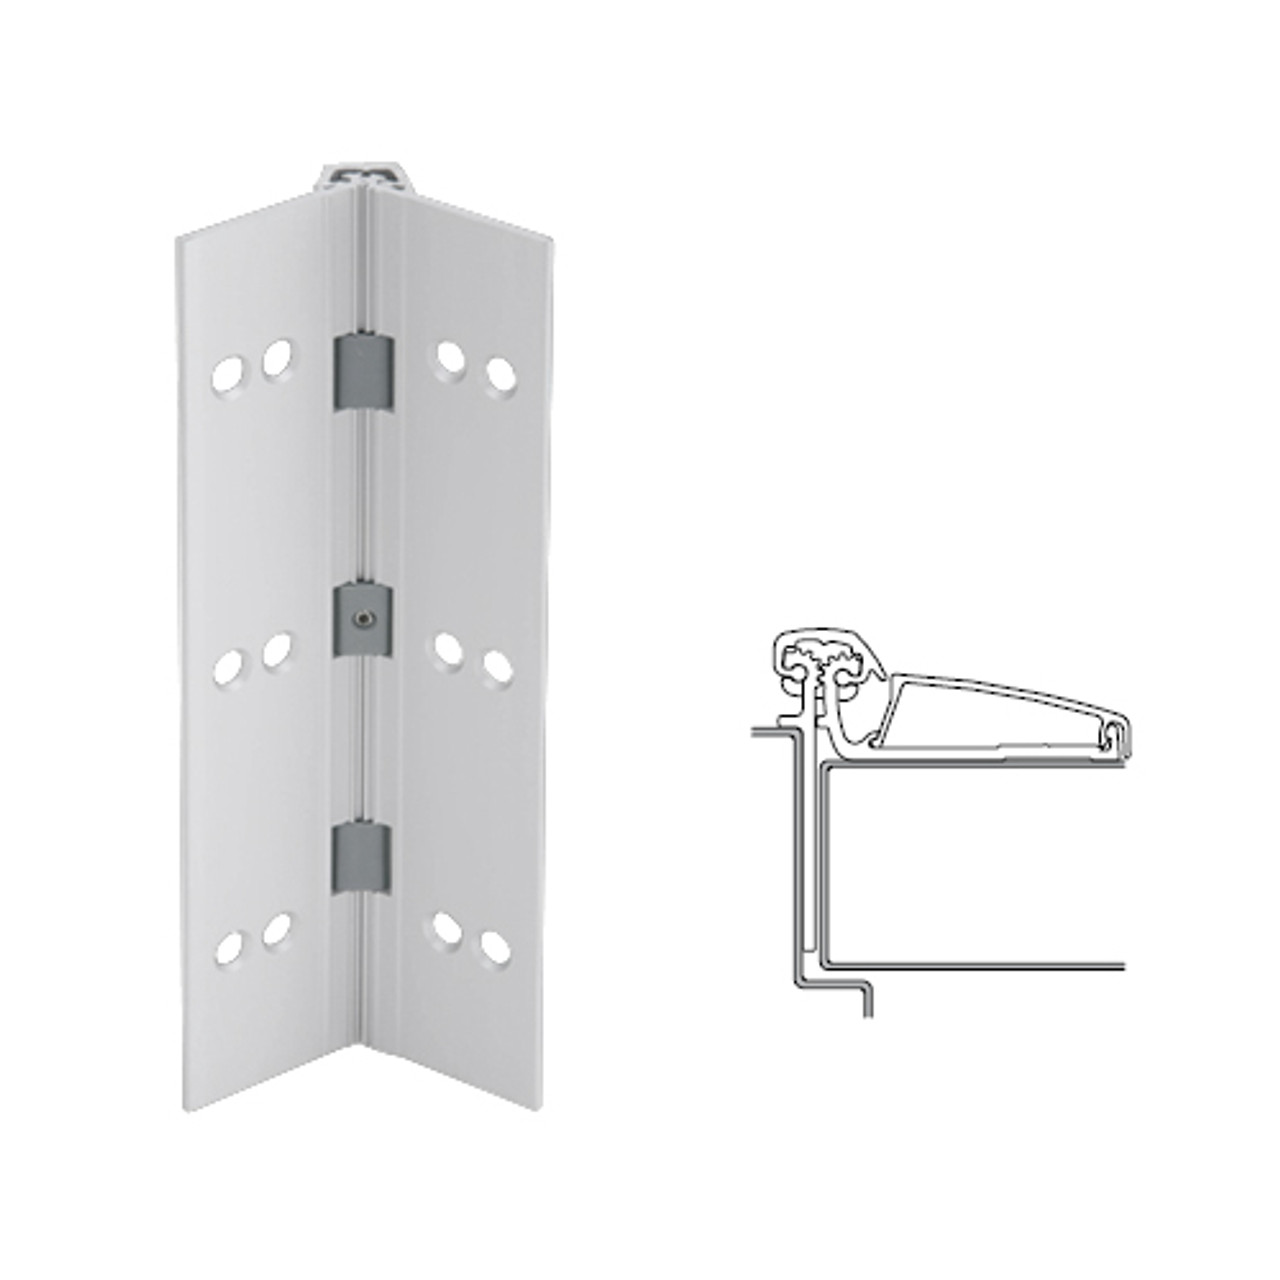 046XY-US28-83-WD IVES Adjustable Half Surface Continuous Geared Hinges with Wood Screws in Satin Aluminum